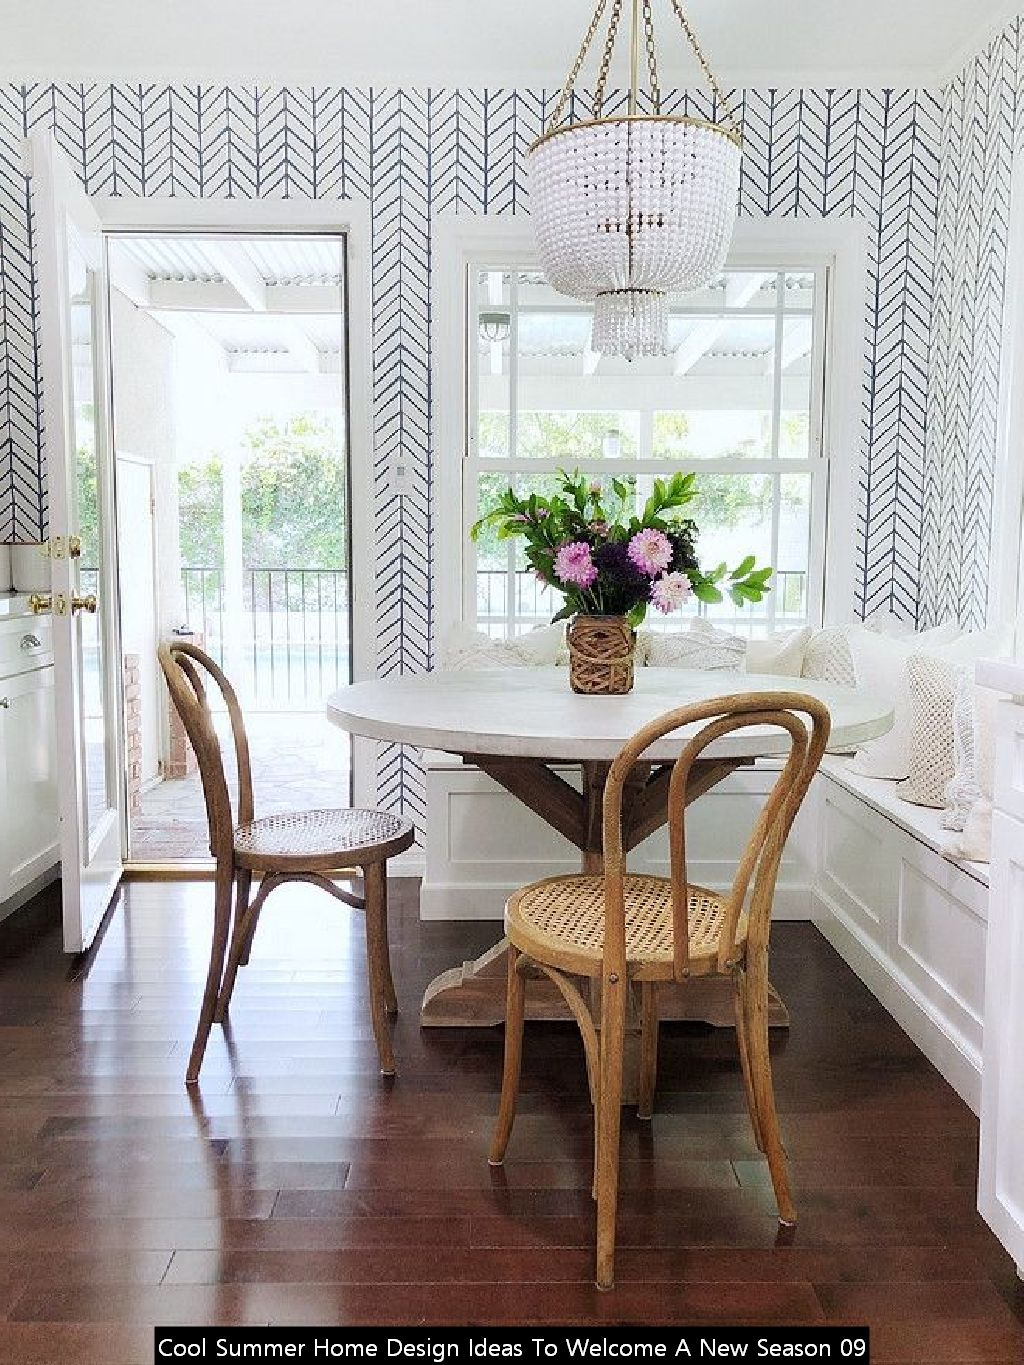 Cool Summer Home Design Ideas To Welcome A New Season 09